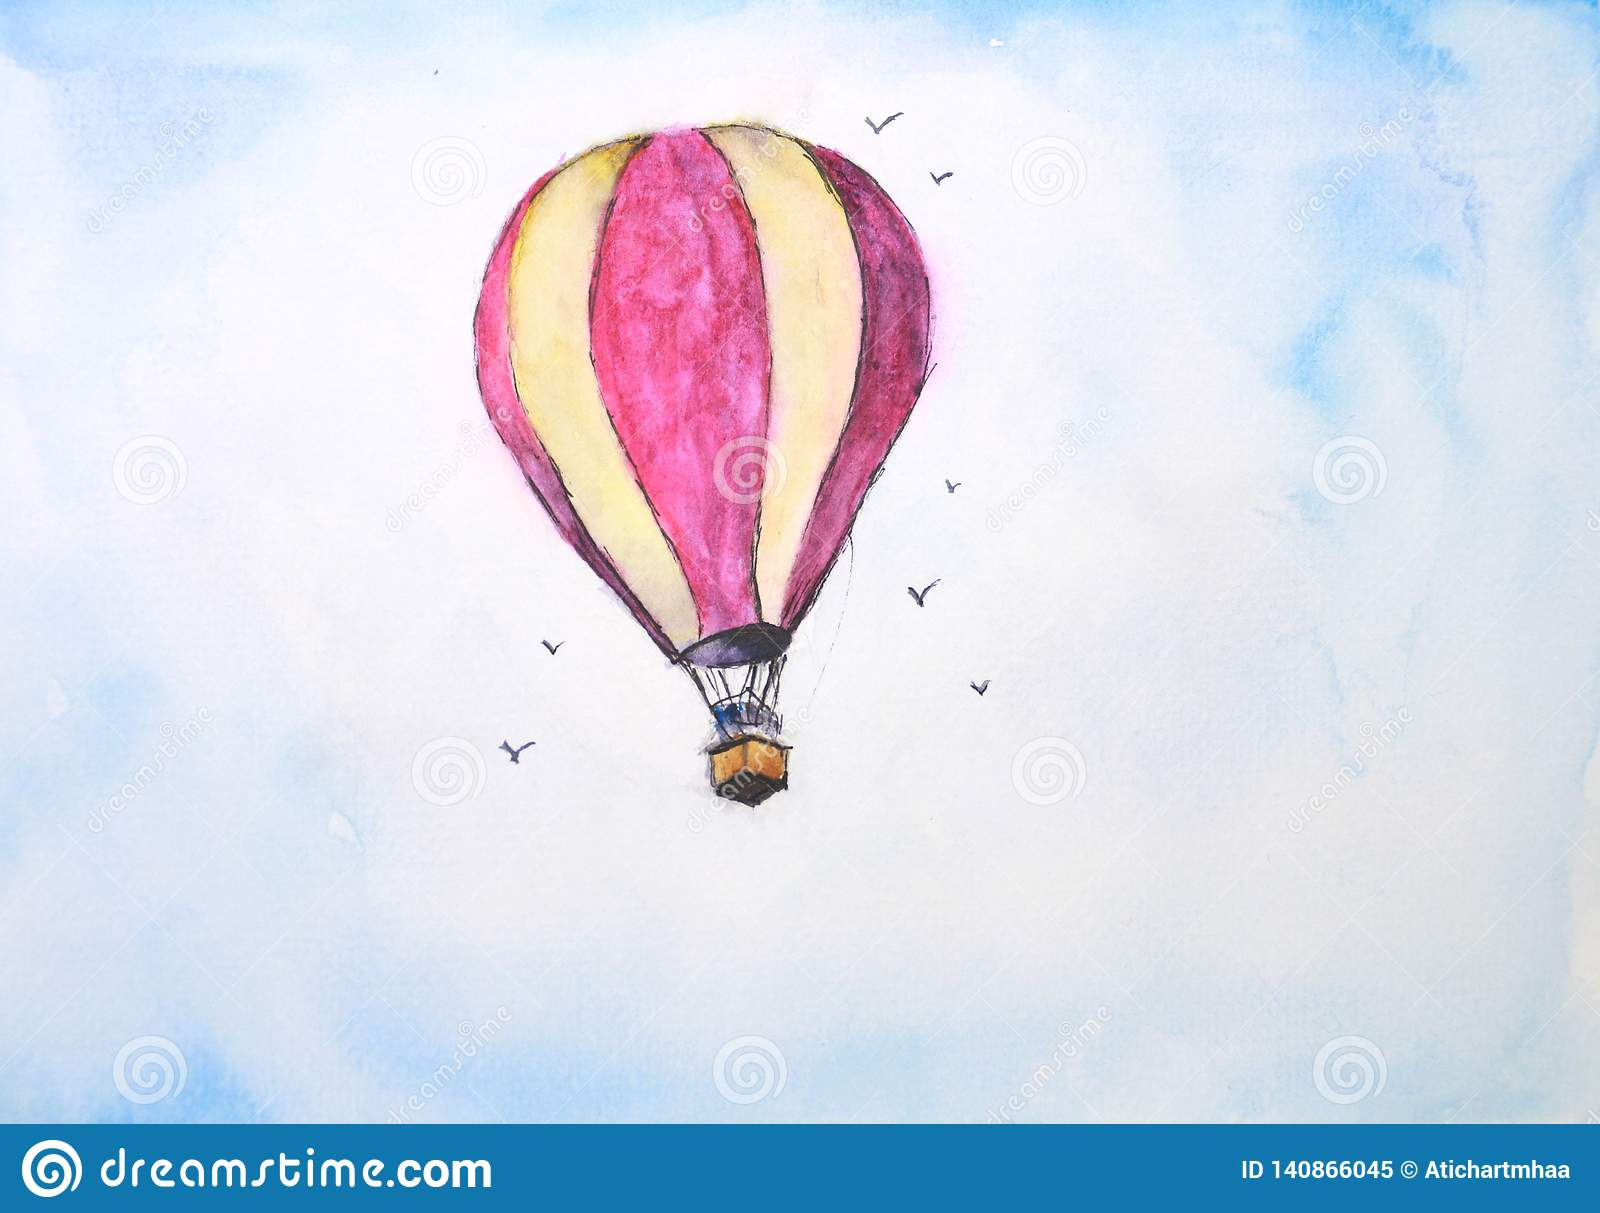 Watercolor balloon in the sky with clouds